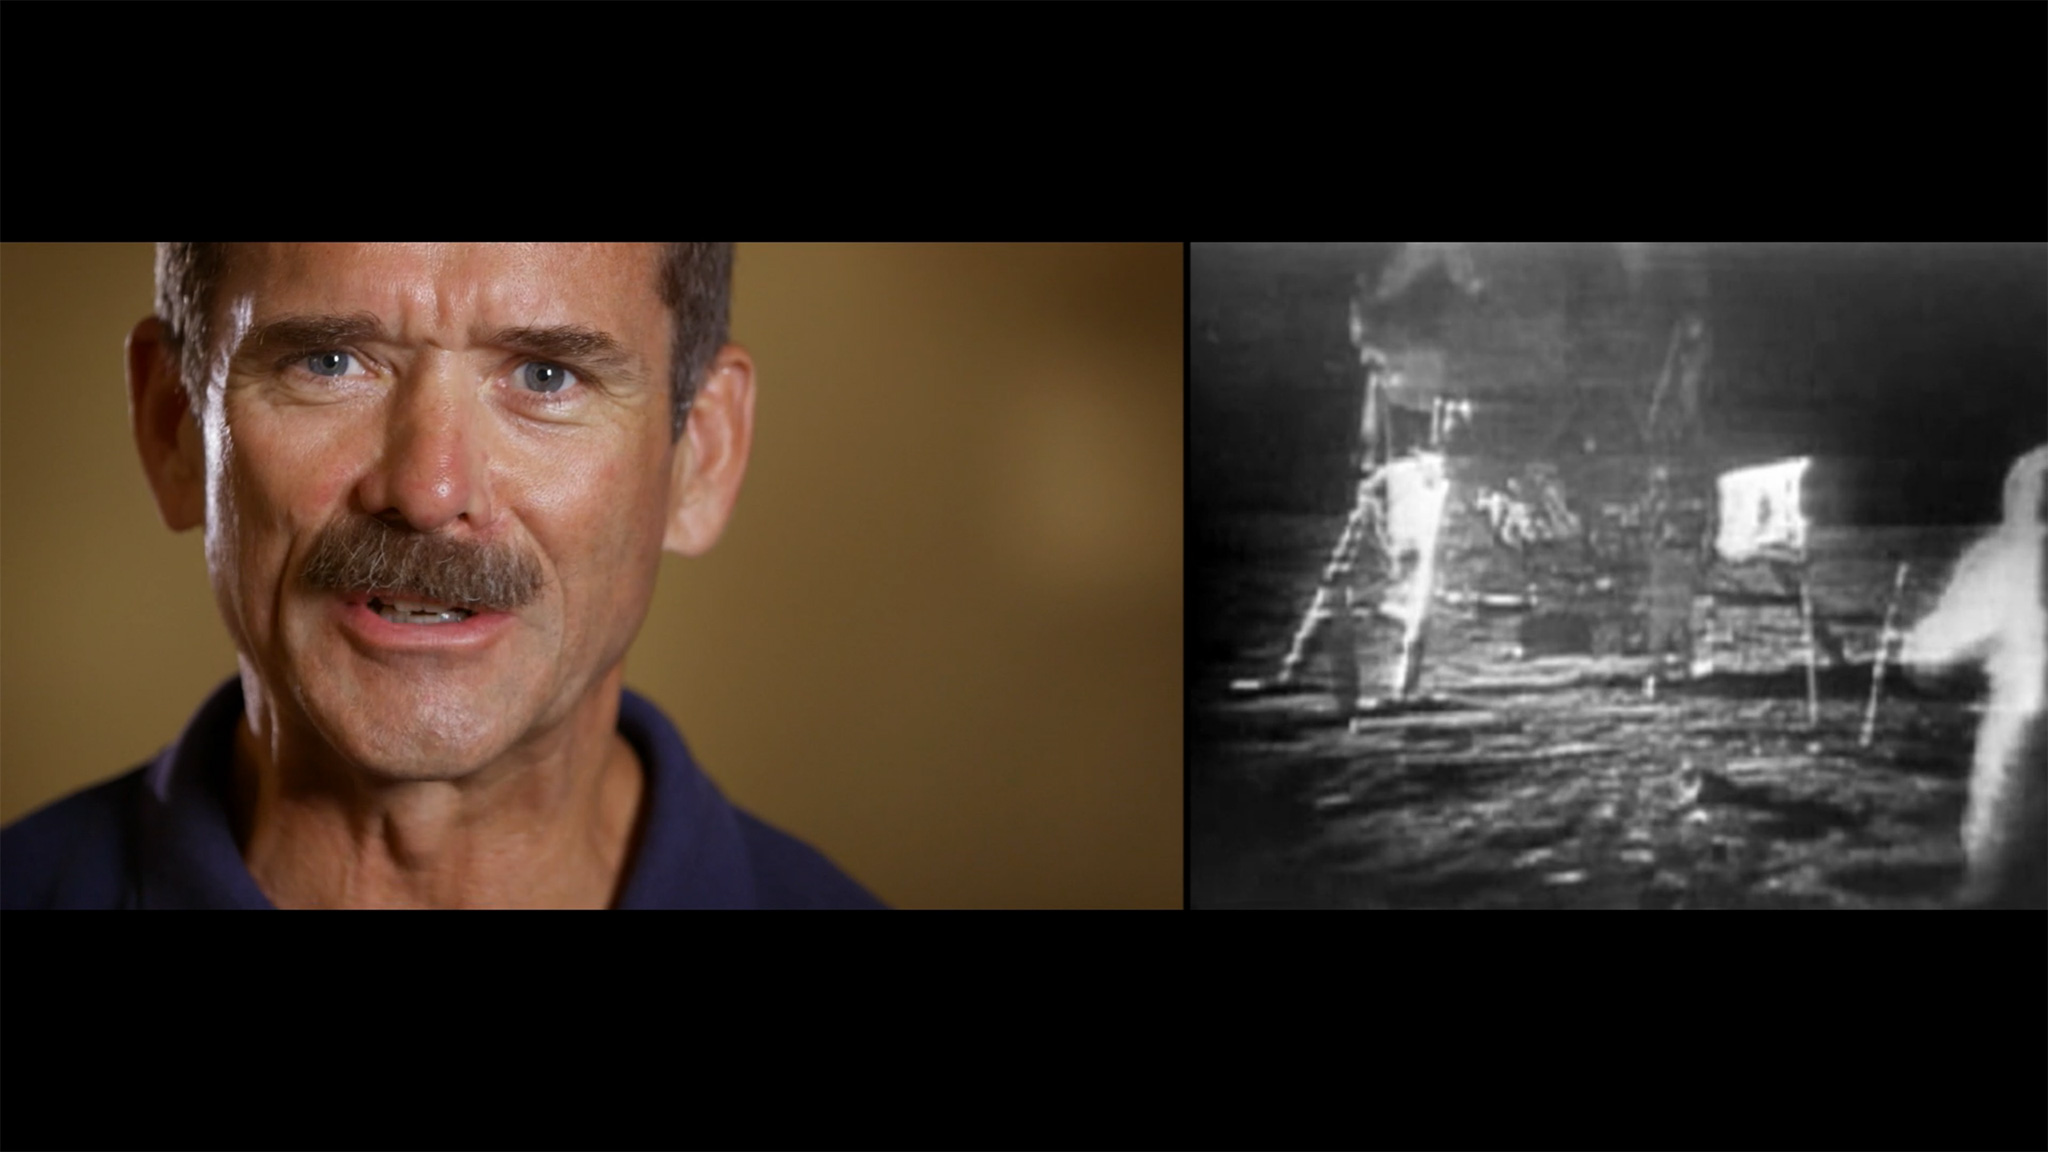 NFB Space Playlist on Chris Hadfield's Journey (Ages 11-15)